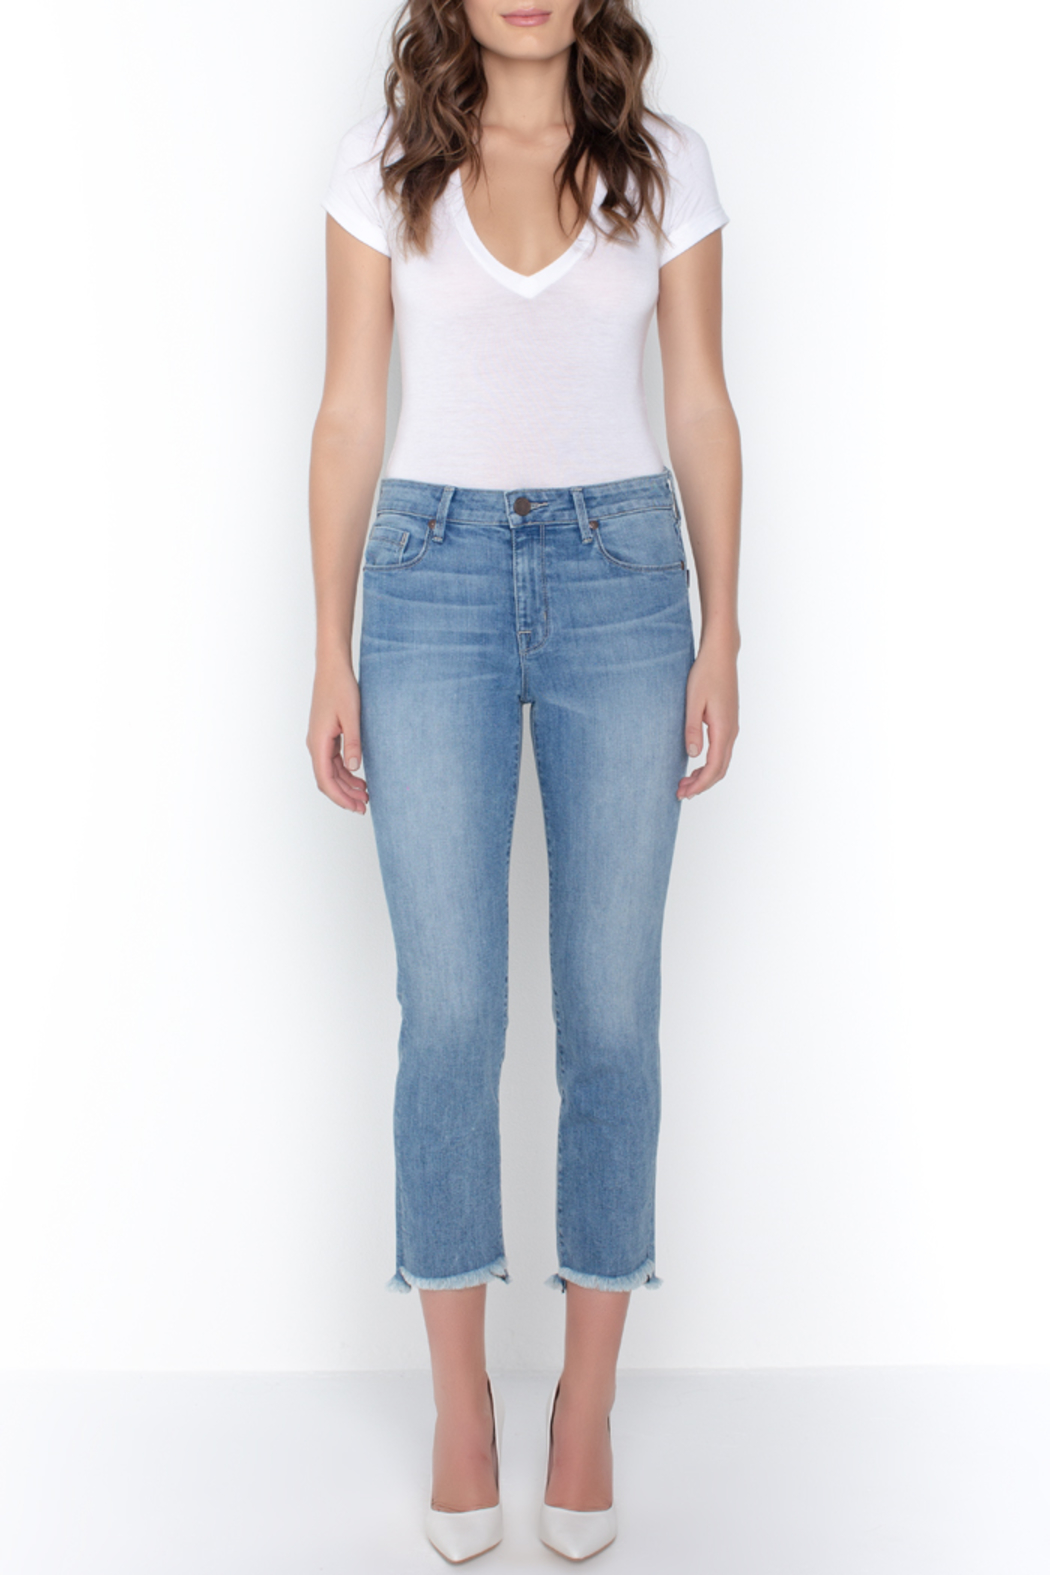 Parker Smith  HIGH-LOW STRAIGHT JEAN - Main Image